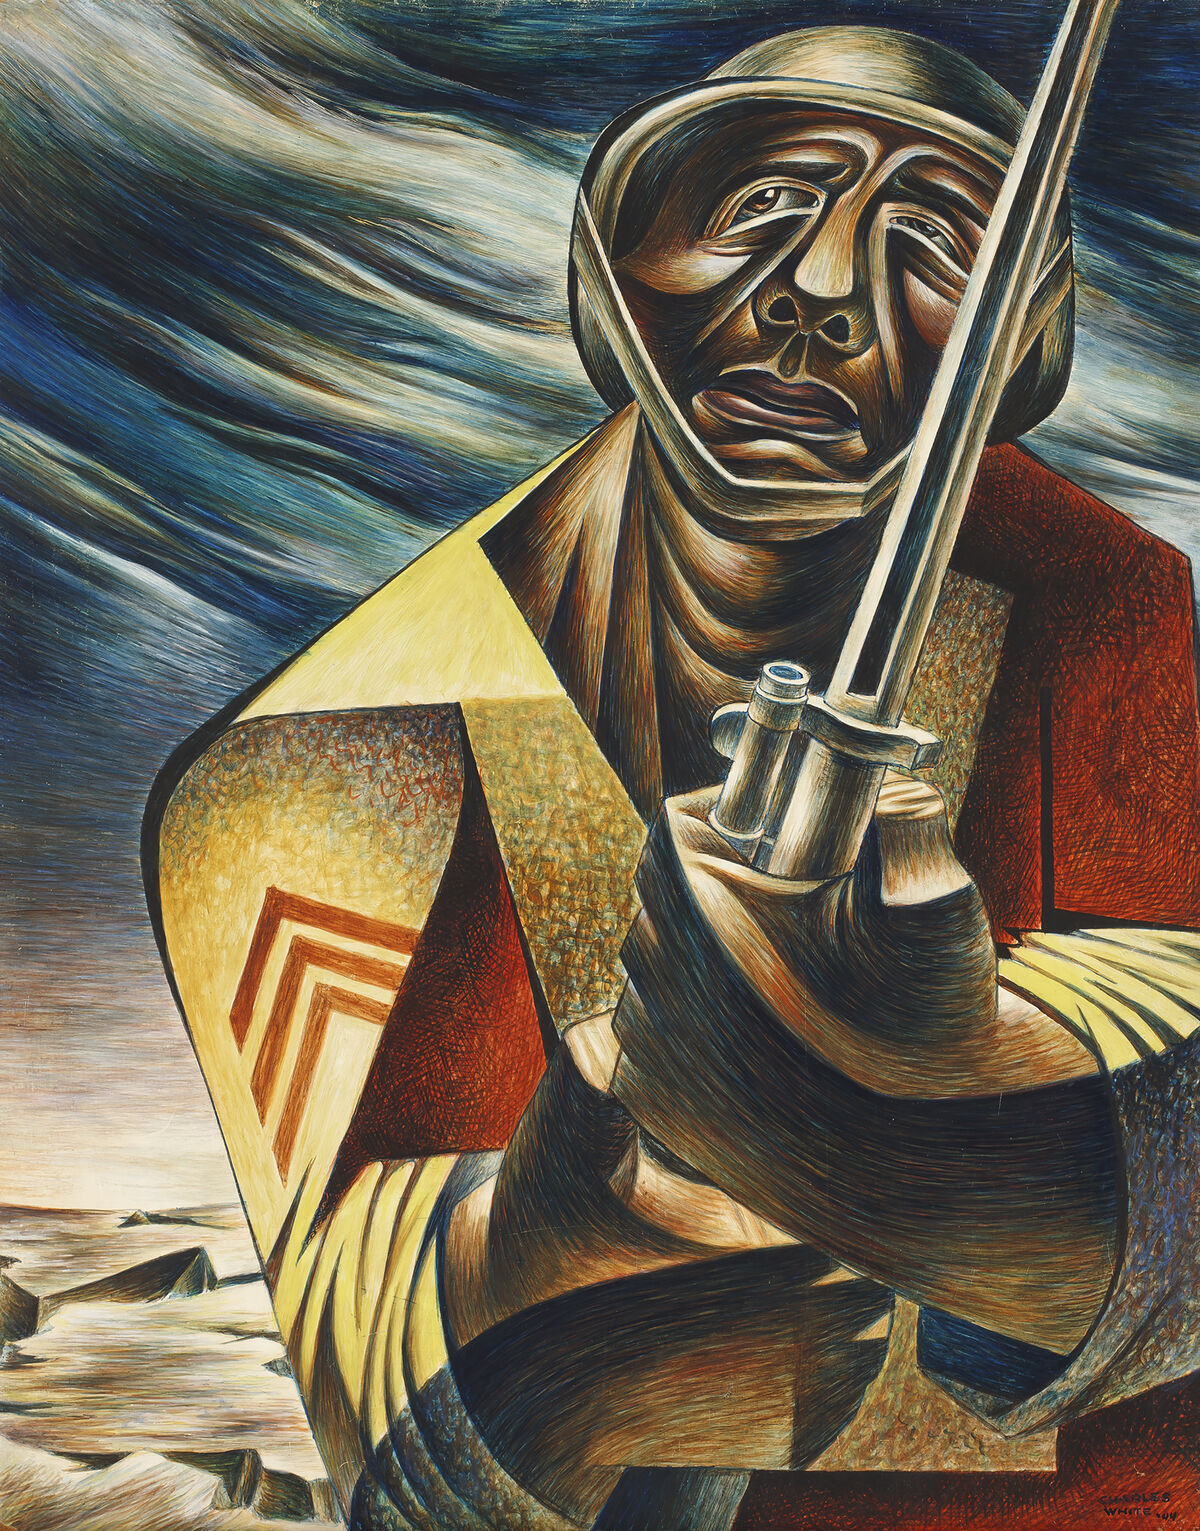 Charles White, Soldier, 1944. © The Charles White Archives. Courtesy of the Huntington Art Collections